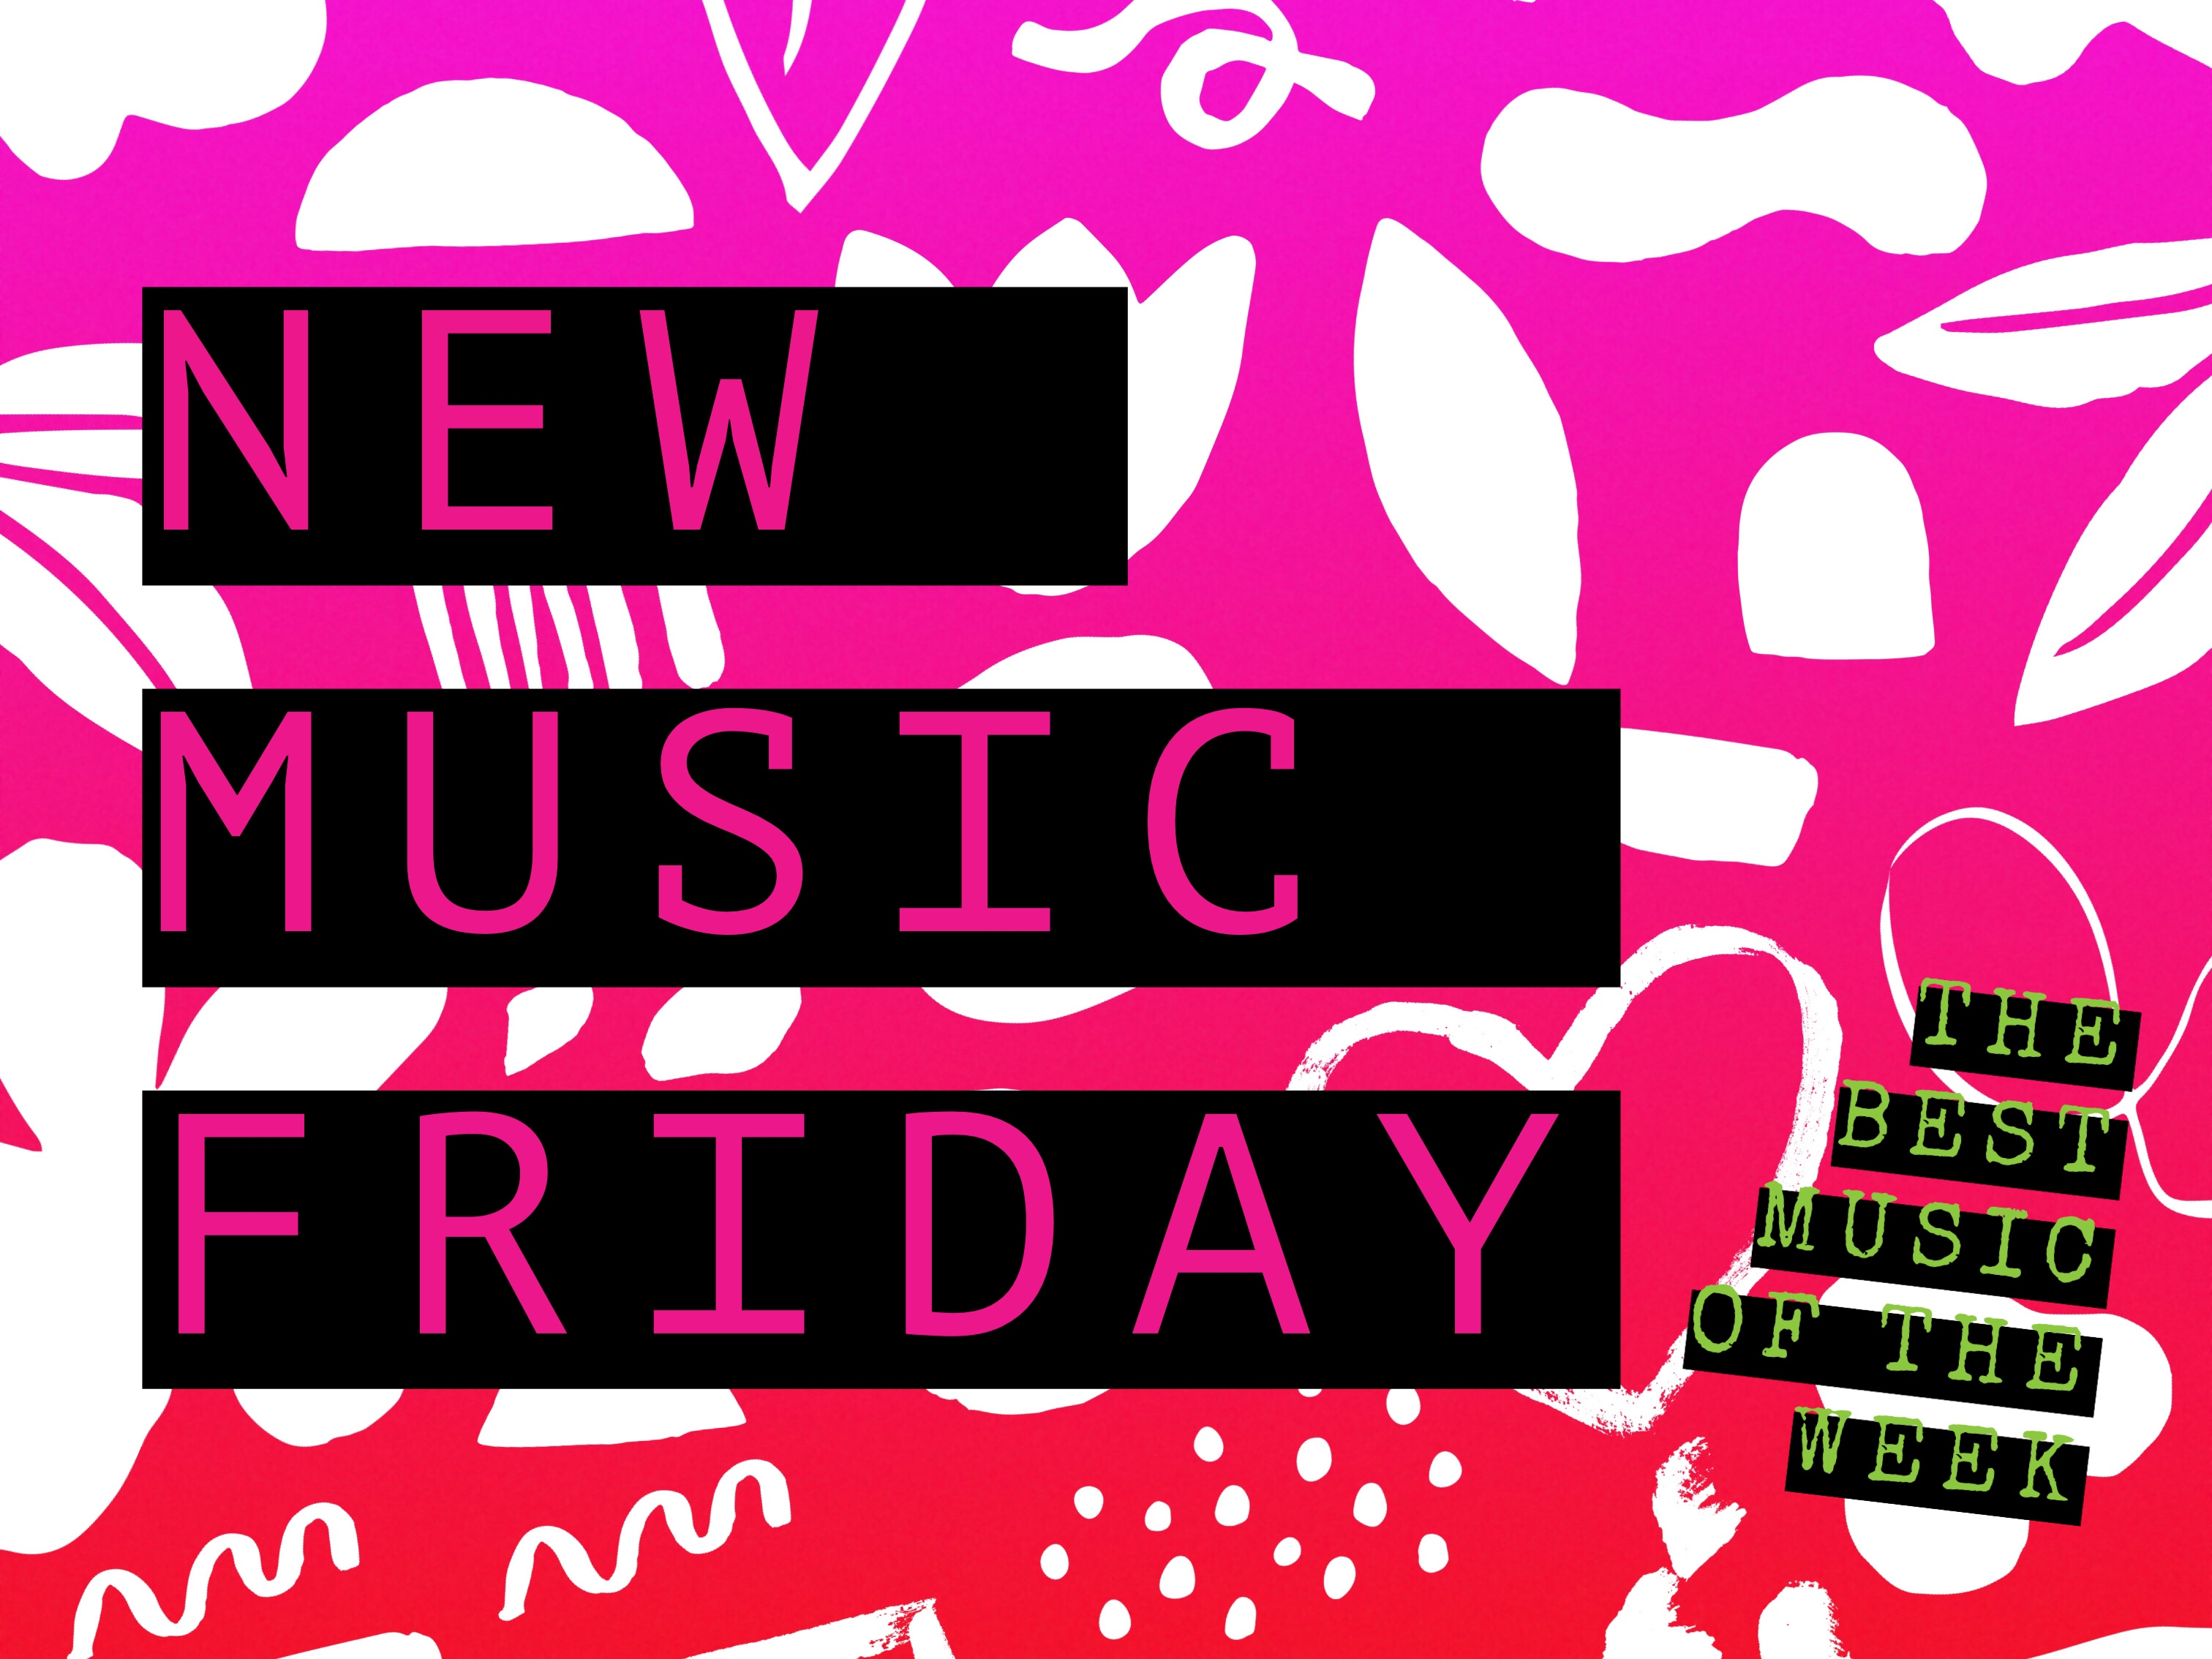 NEW MUSIC FRIDAY: THE BEST MUSIC OF THE WEEK